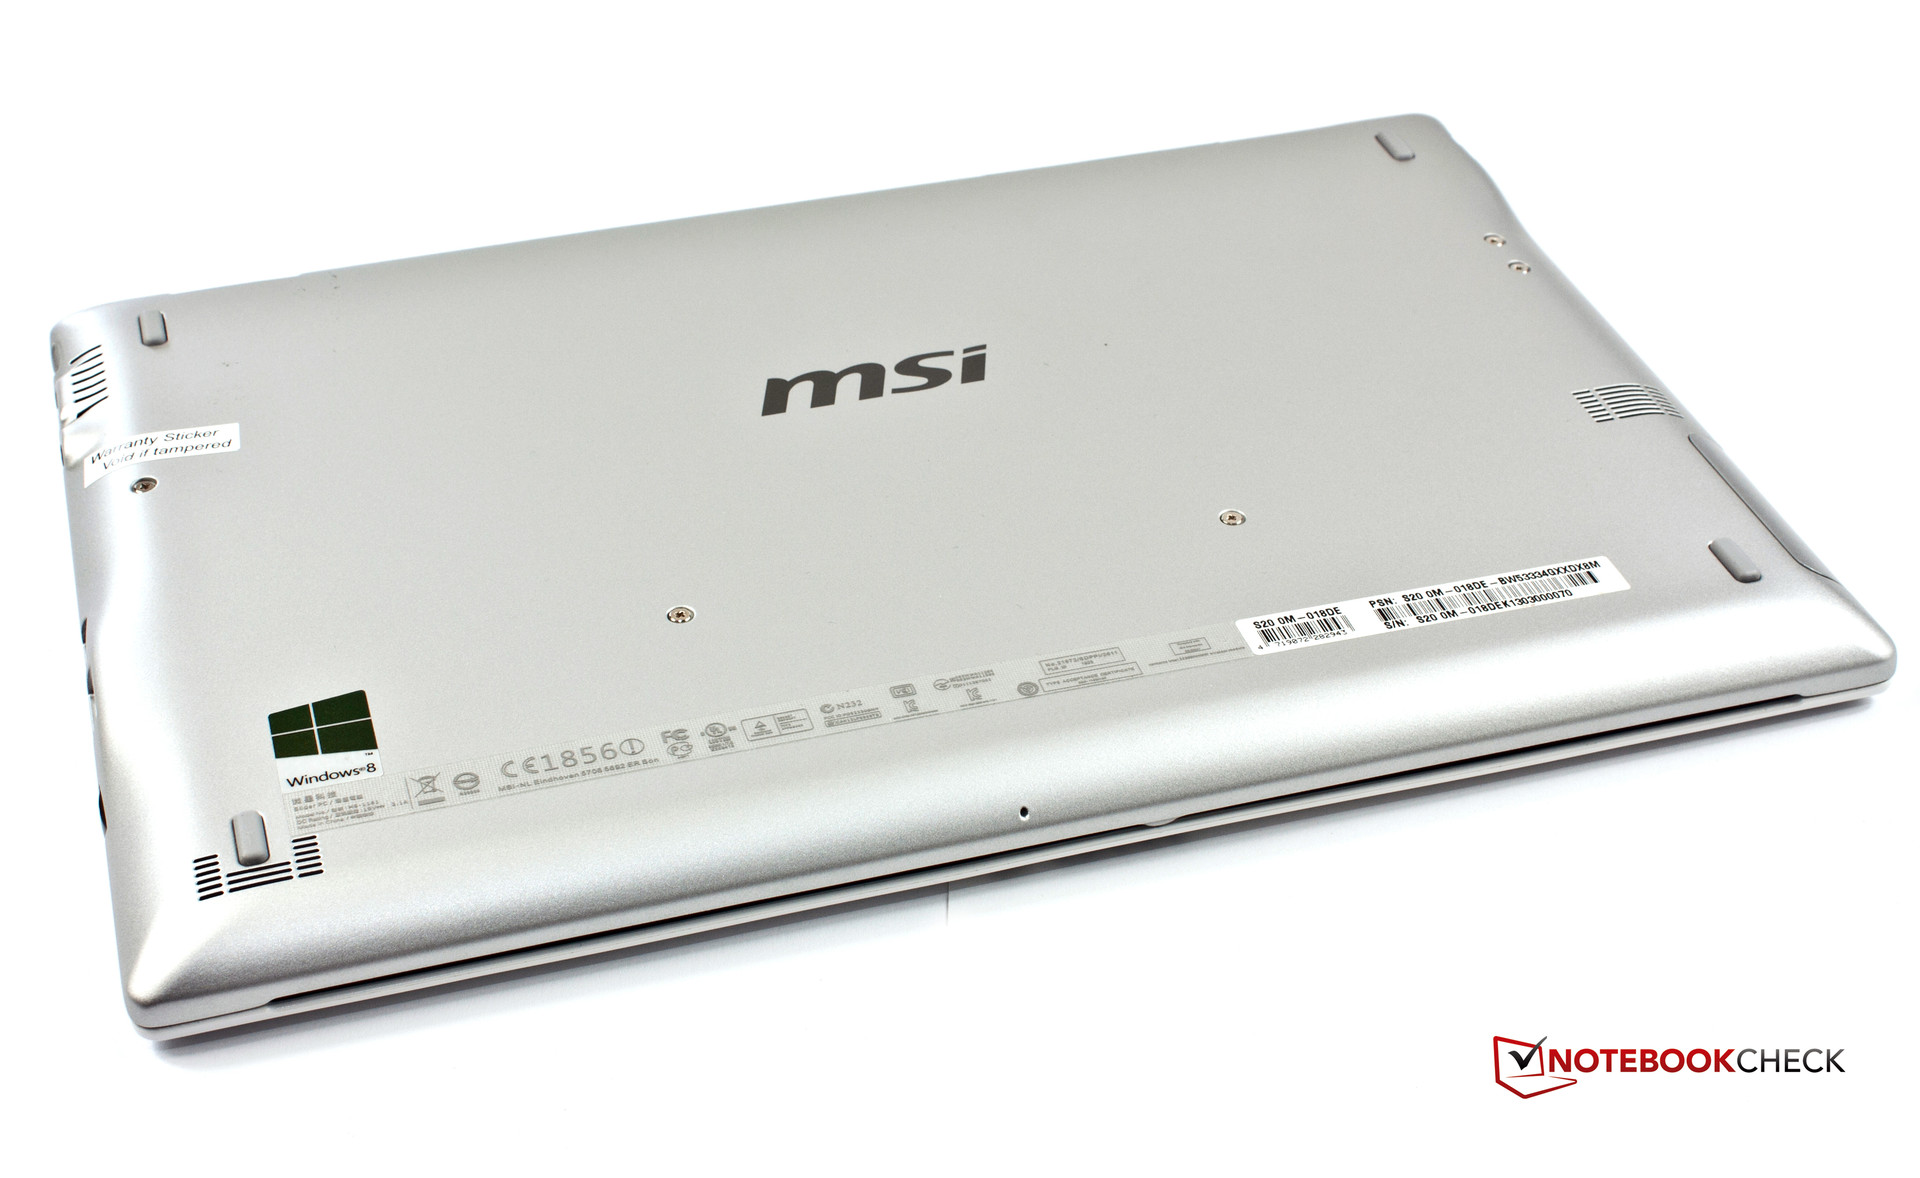 MSI S20 Realtek Card Reader Windows 7